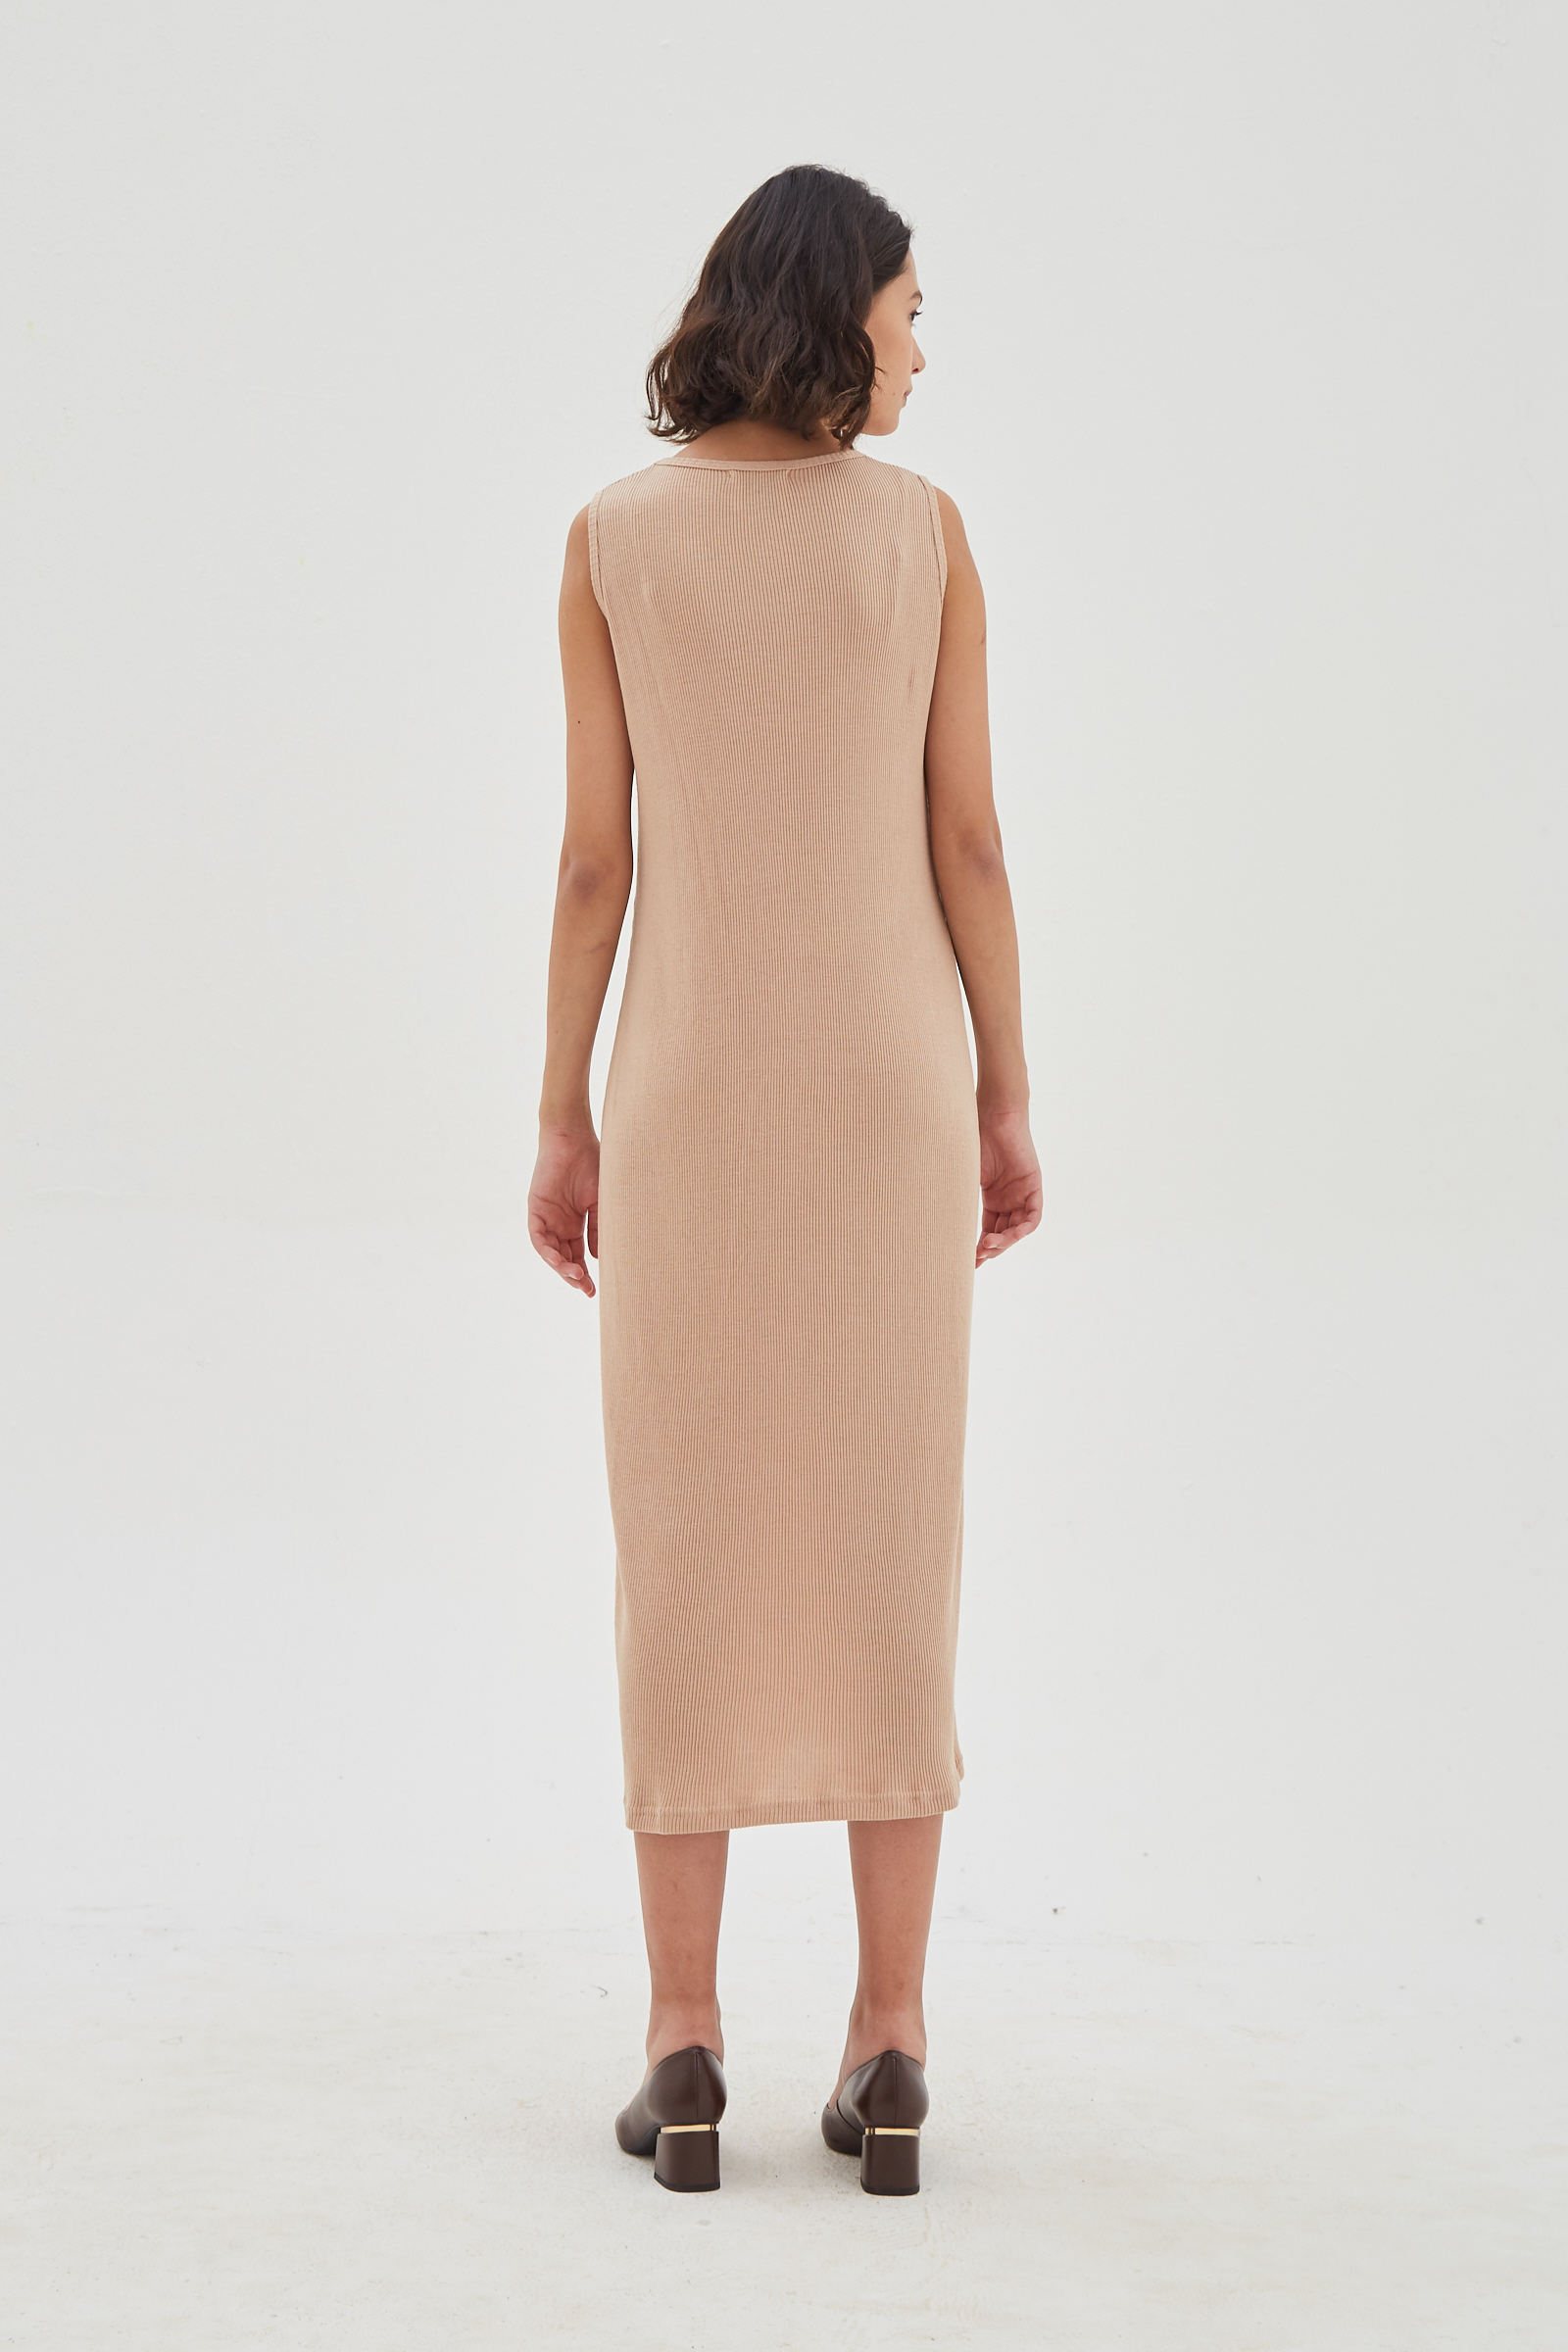 Shopatvelvet Moral Dress Cream